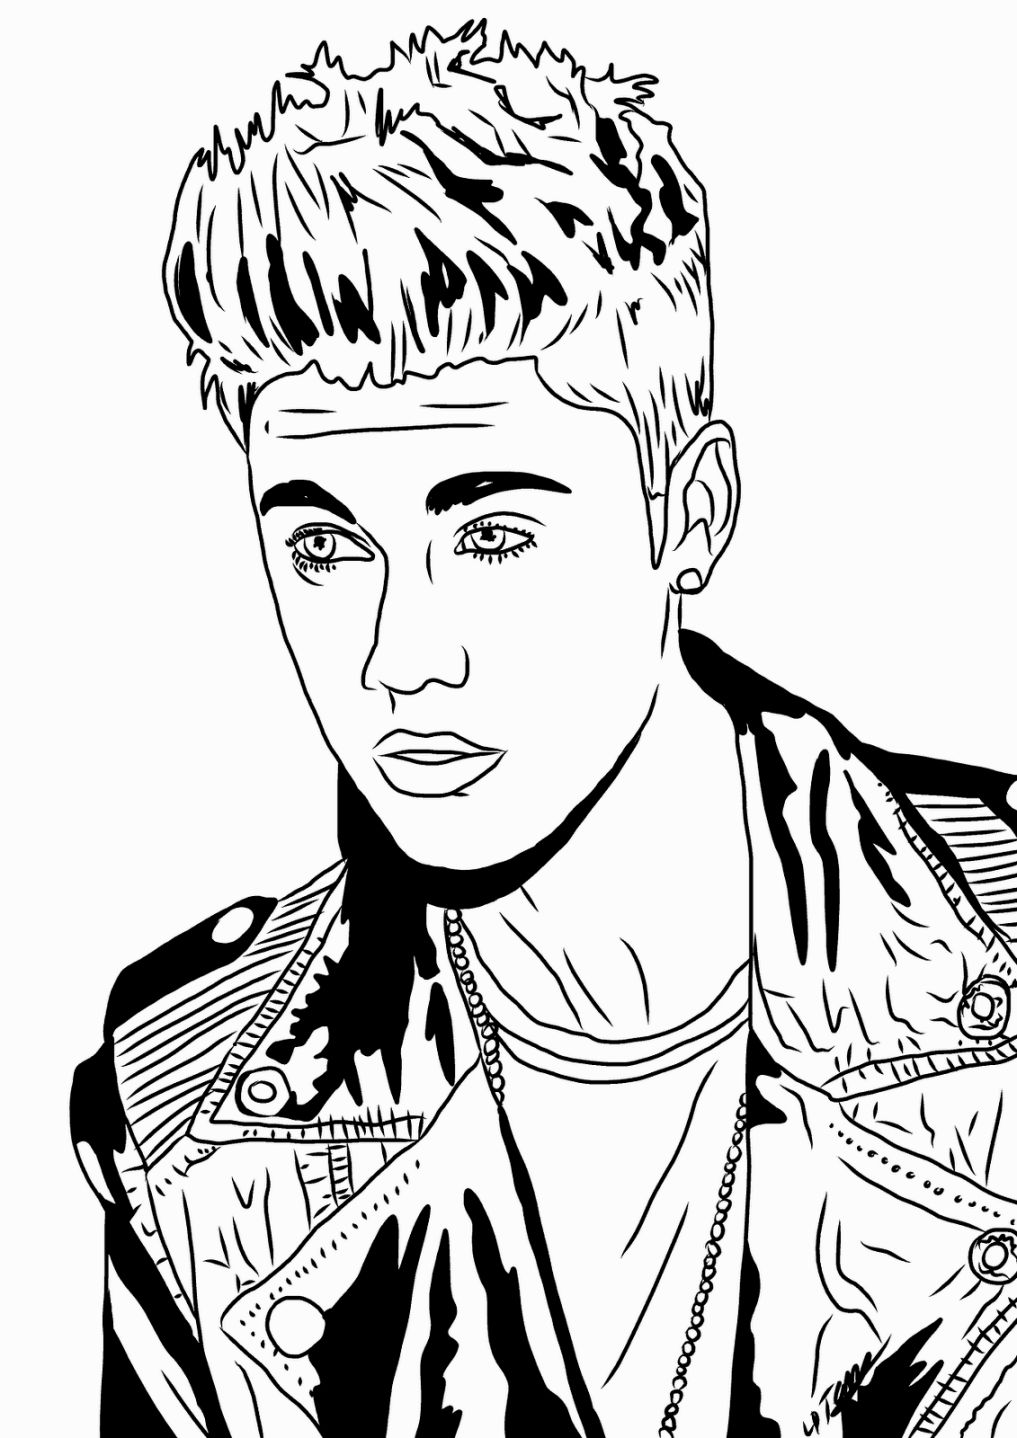 Justin Drawing at GetDrawings.com   Free for personal use Justin ...